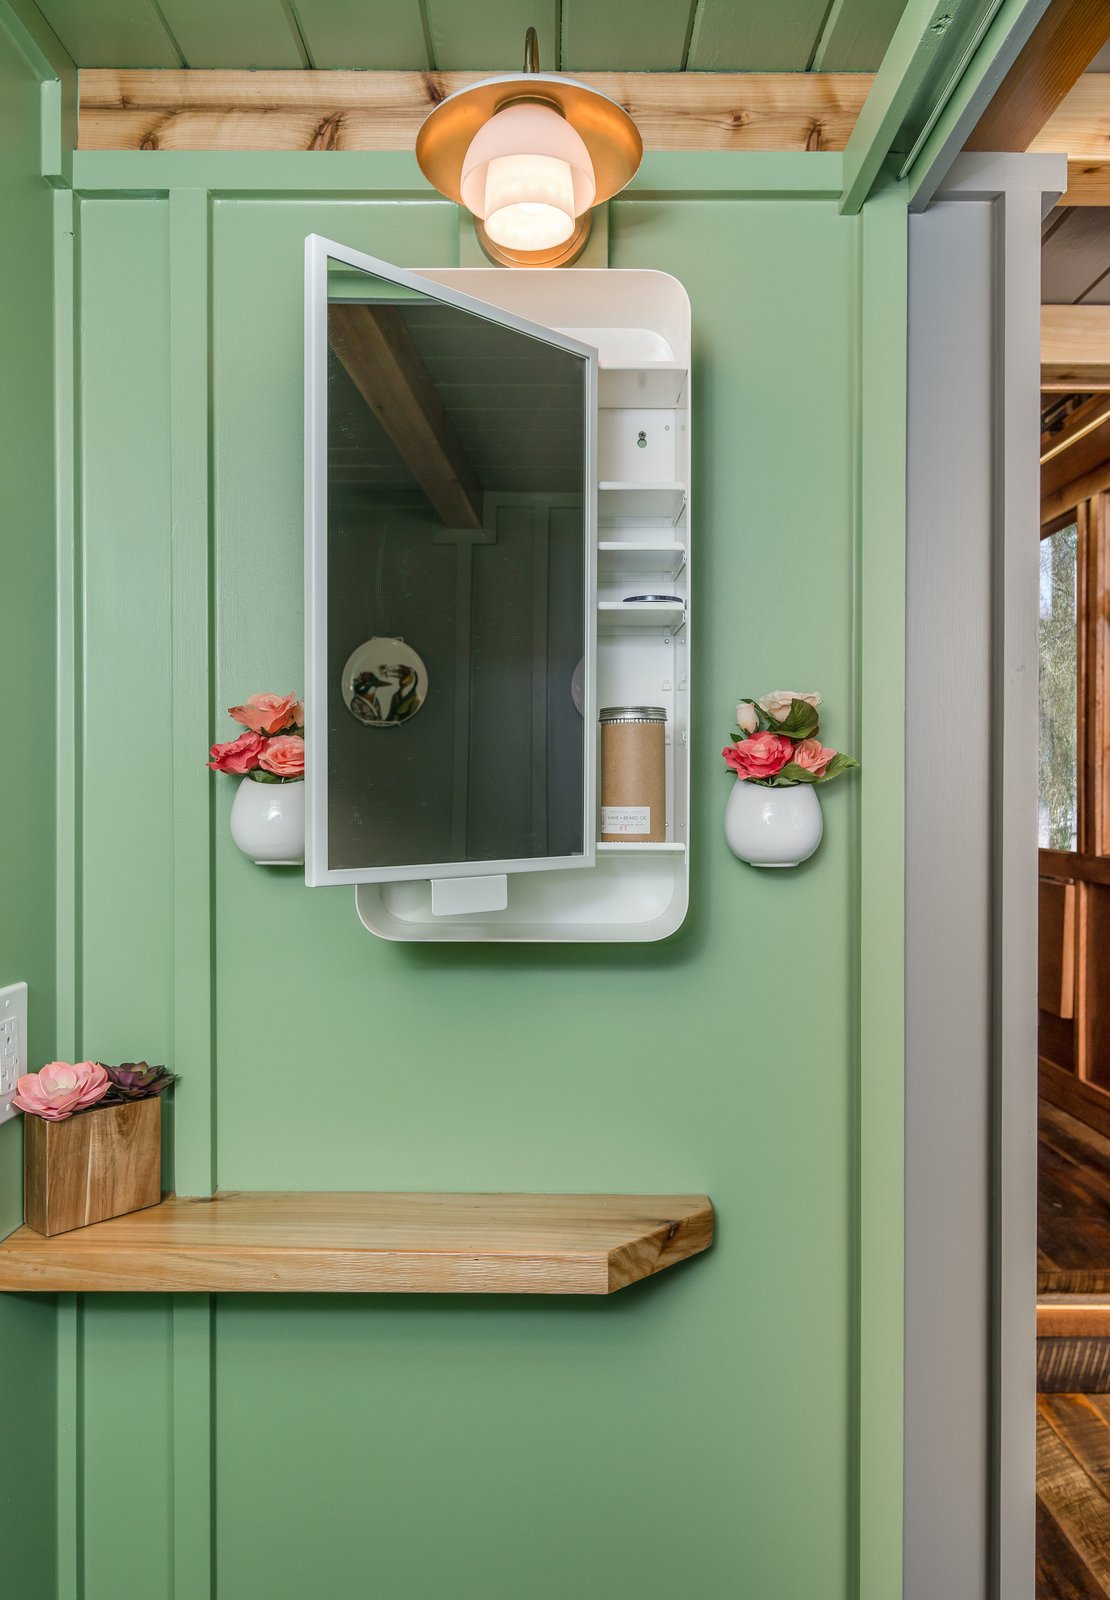 Bath Room and Pendant Lighting A petite bathroom has been painted a peaceful shade of green.  Photo 11 of 12 in This Tiny Home and Writing Studio Was Invented for a Children's Author